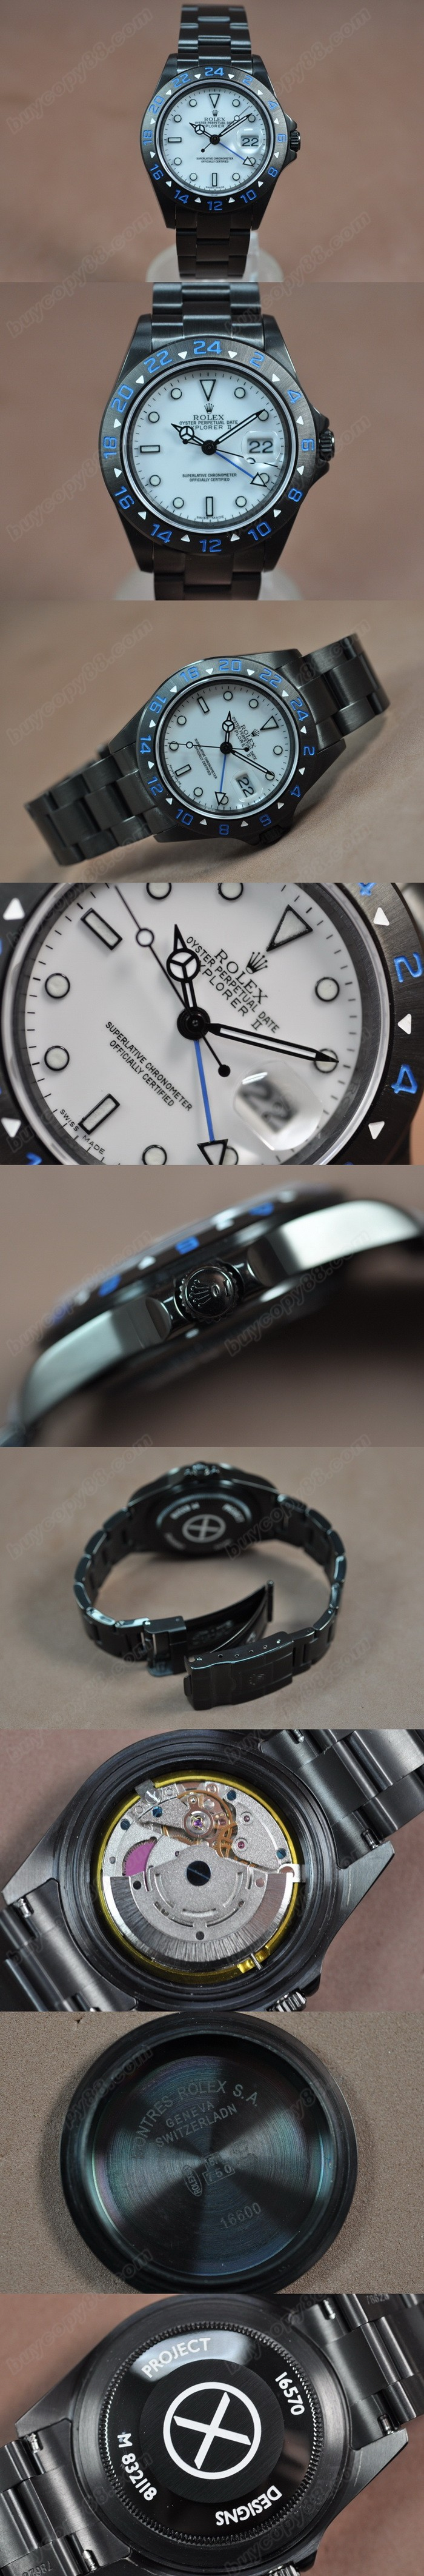 勞力士 Watches Explorer Ⅱ Full PVD 白 文字盤 Asia 2813 GMT 自動機芯 搭 載   0